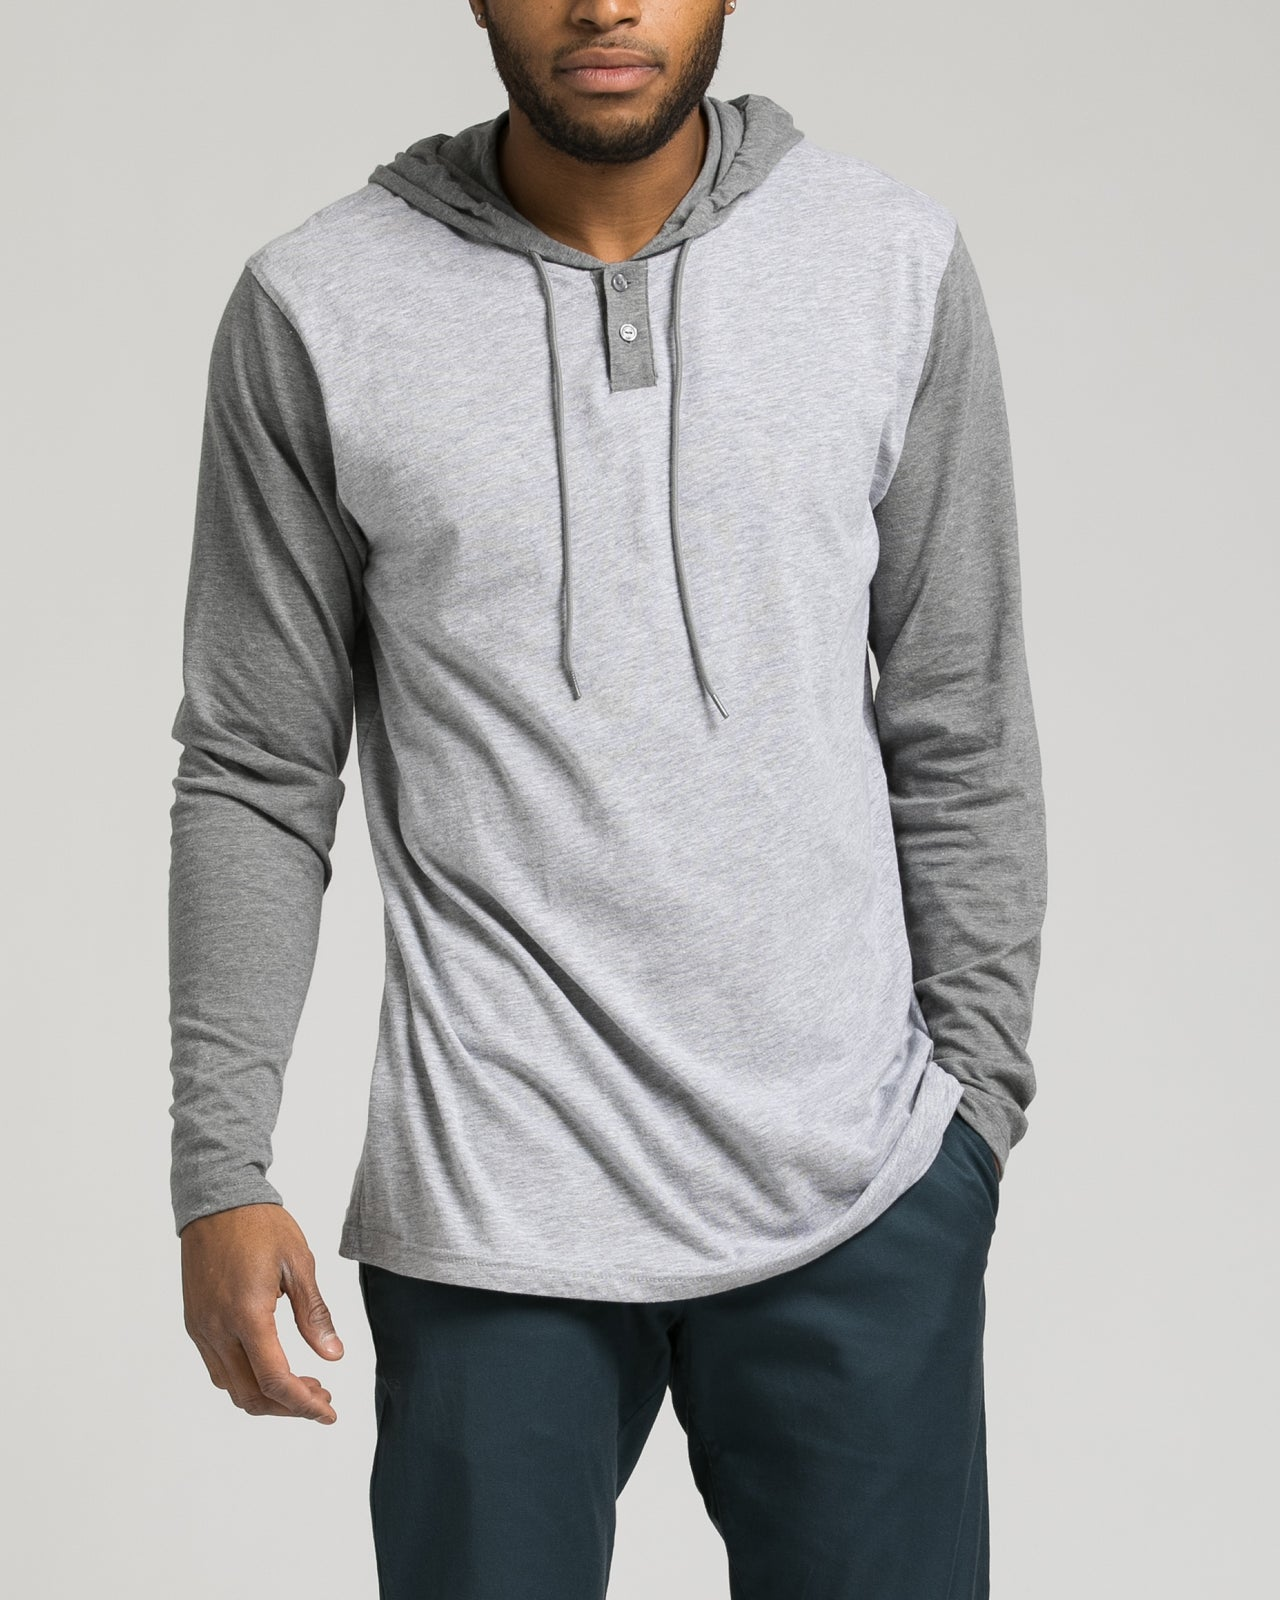 Pick Up Hoodie - Color: Athletic Heather | Gray